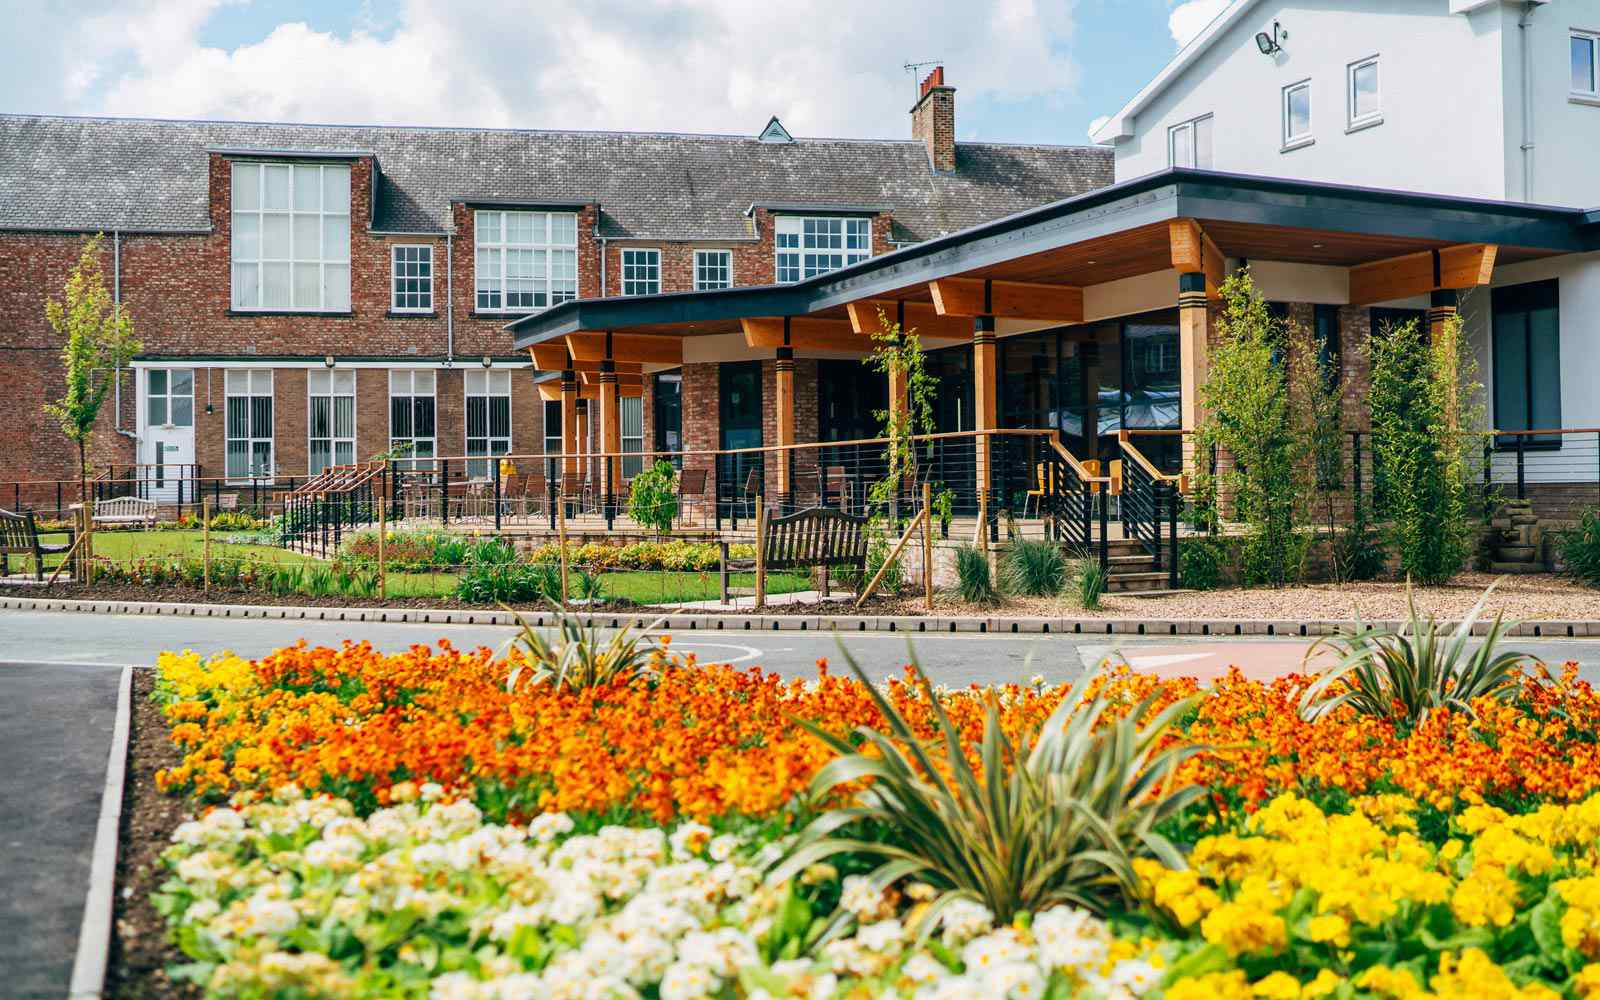 View of the dining room building on campus with orange and yellow flowers in the foreground